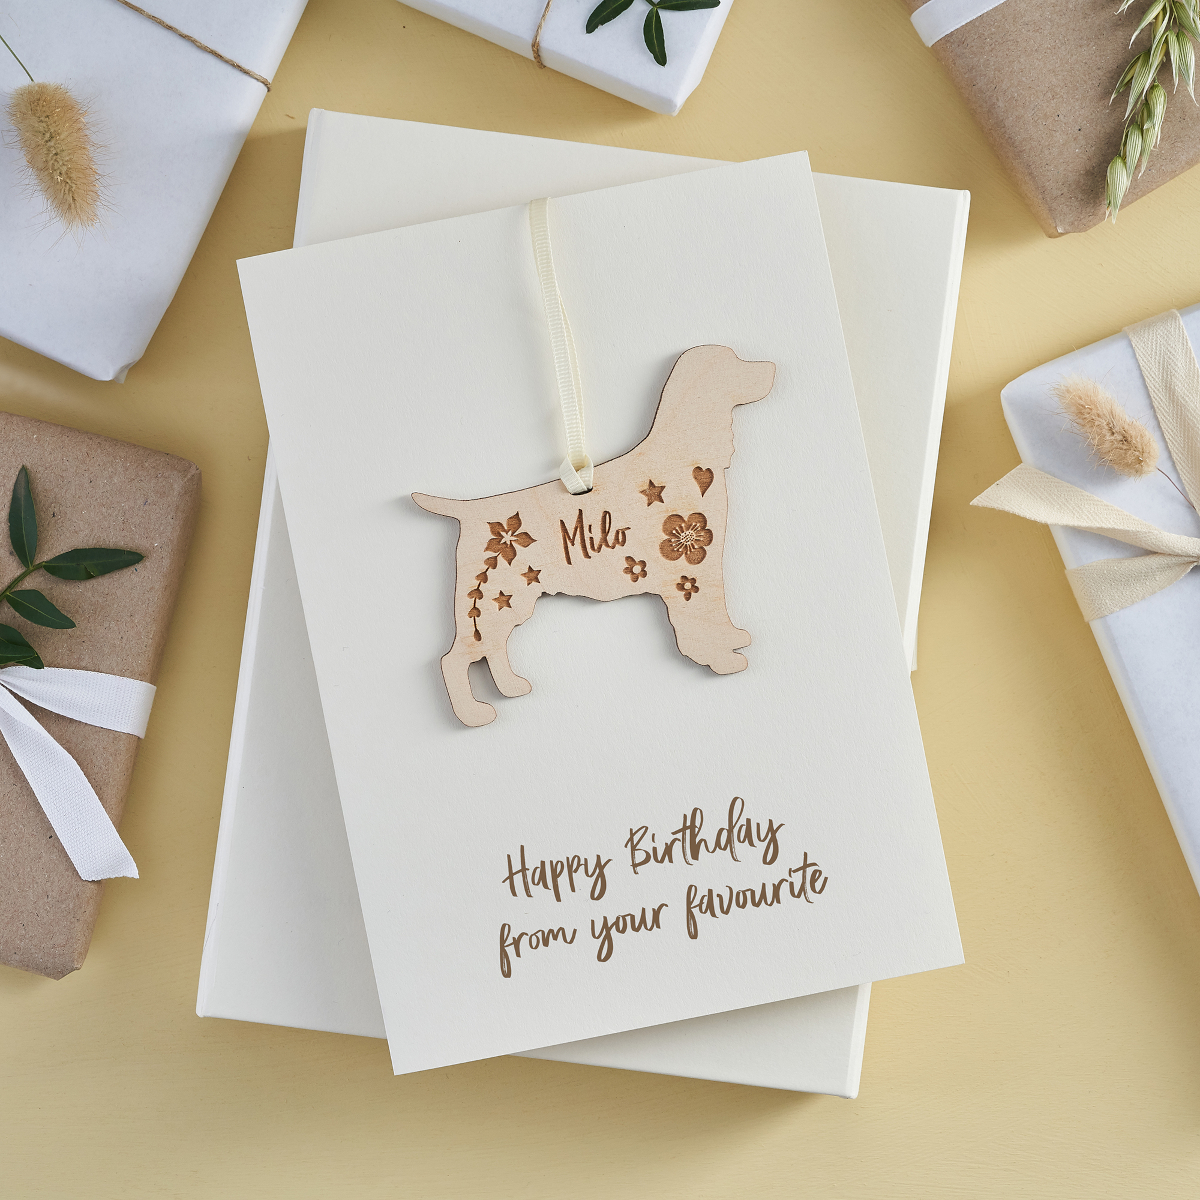 Keepsake card with wooden dog, birthday card for her.